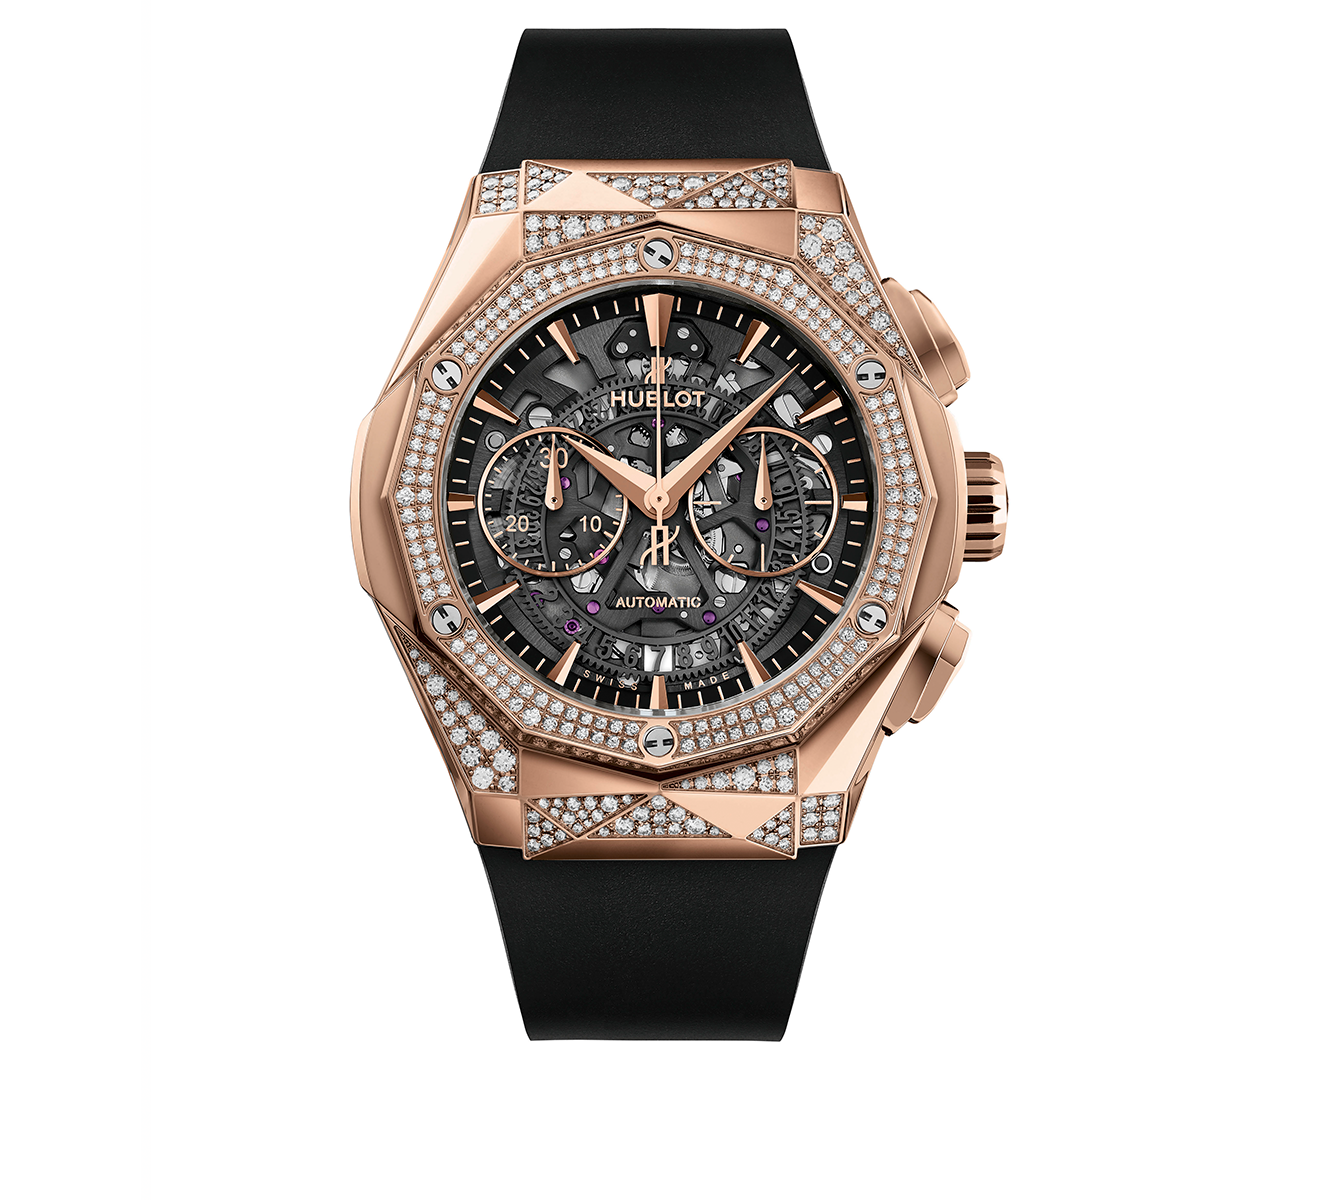 Часы Aerofusion Chronograph Orlinski King Gold Alternative Pavé HUBLOT Classic Fusion 525.OX.0180.RX.1804.ORL19 - фото 1 – Mercury